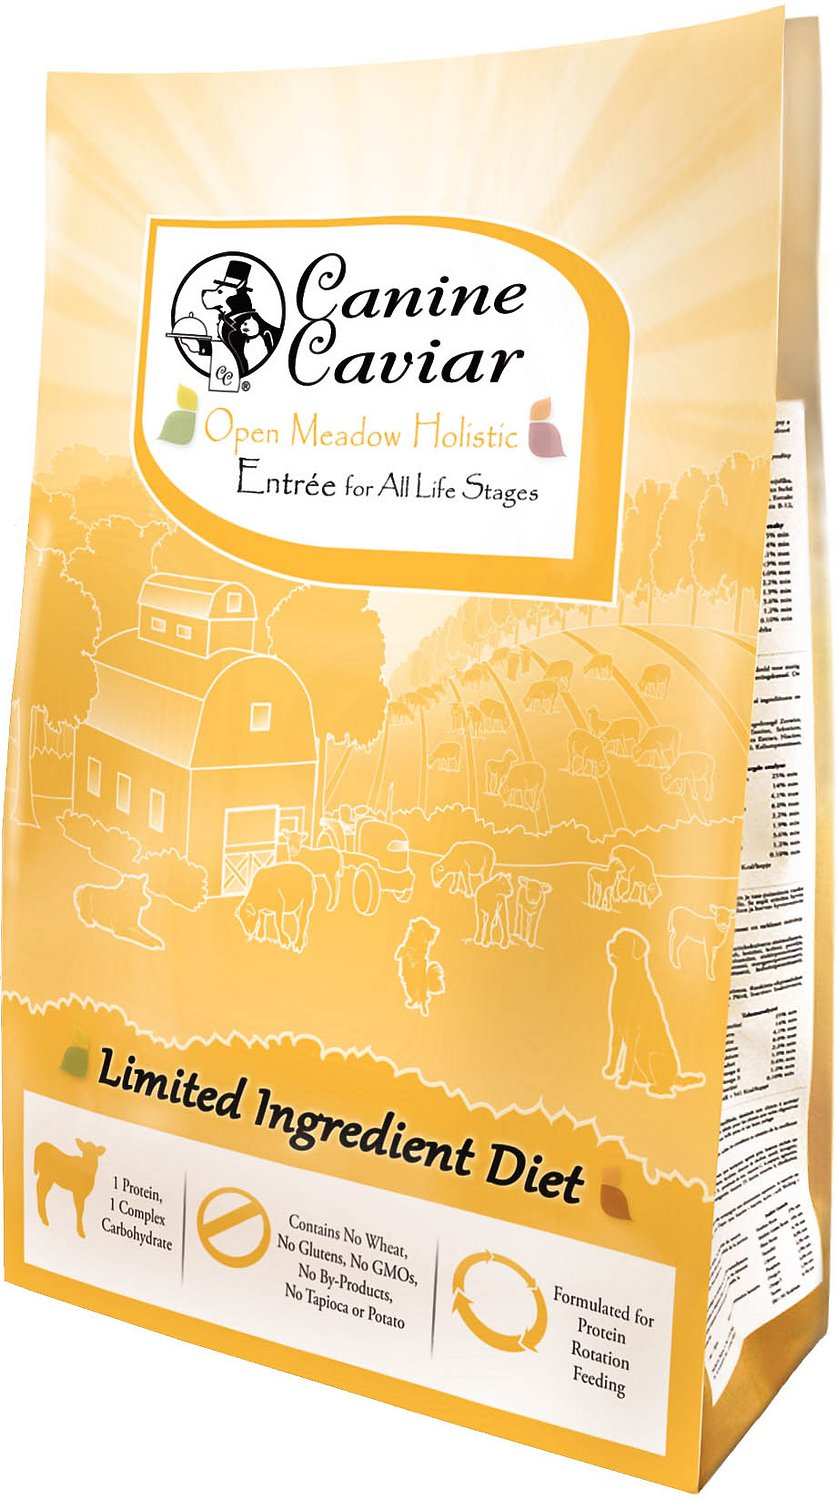 Canine Caviar Limited Ingredient Diet Open Meadow Holistic Entree Dry Dog Food 11lbs